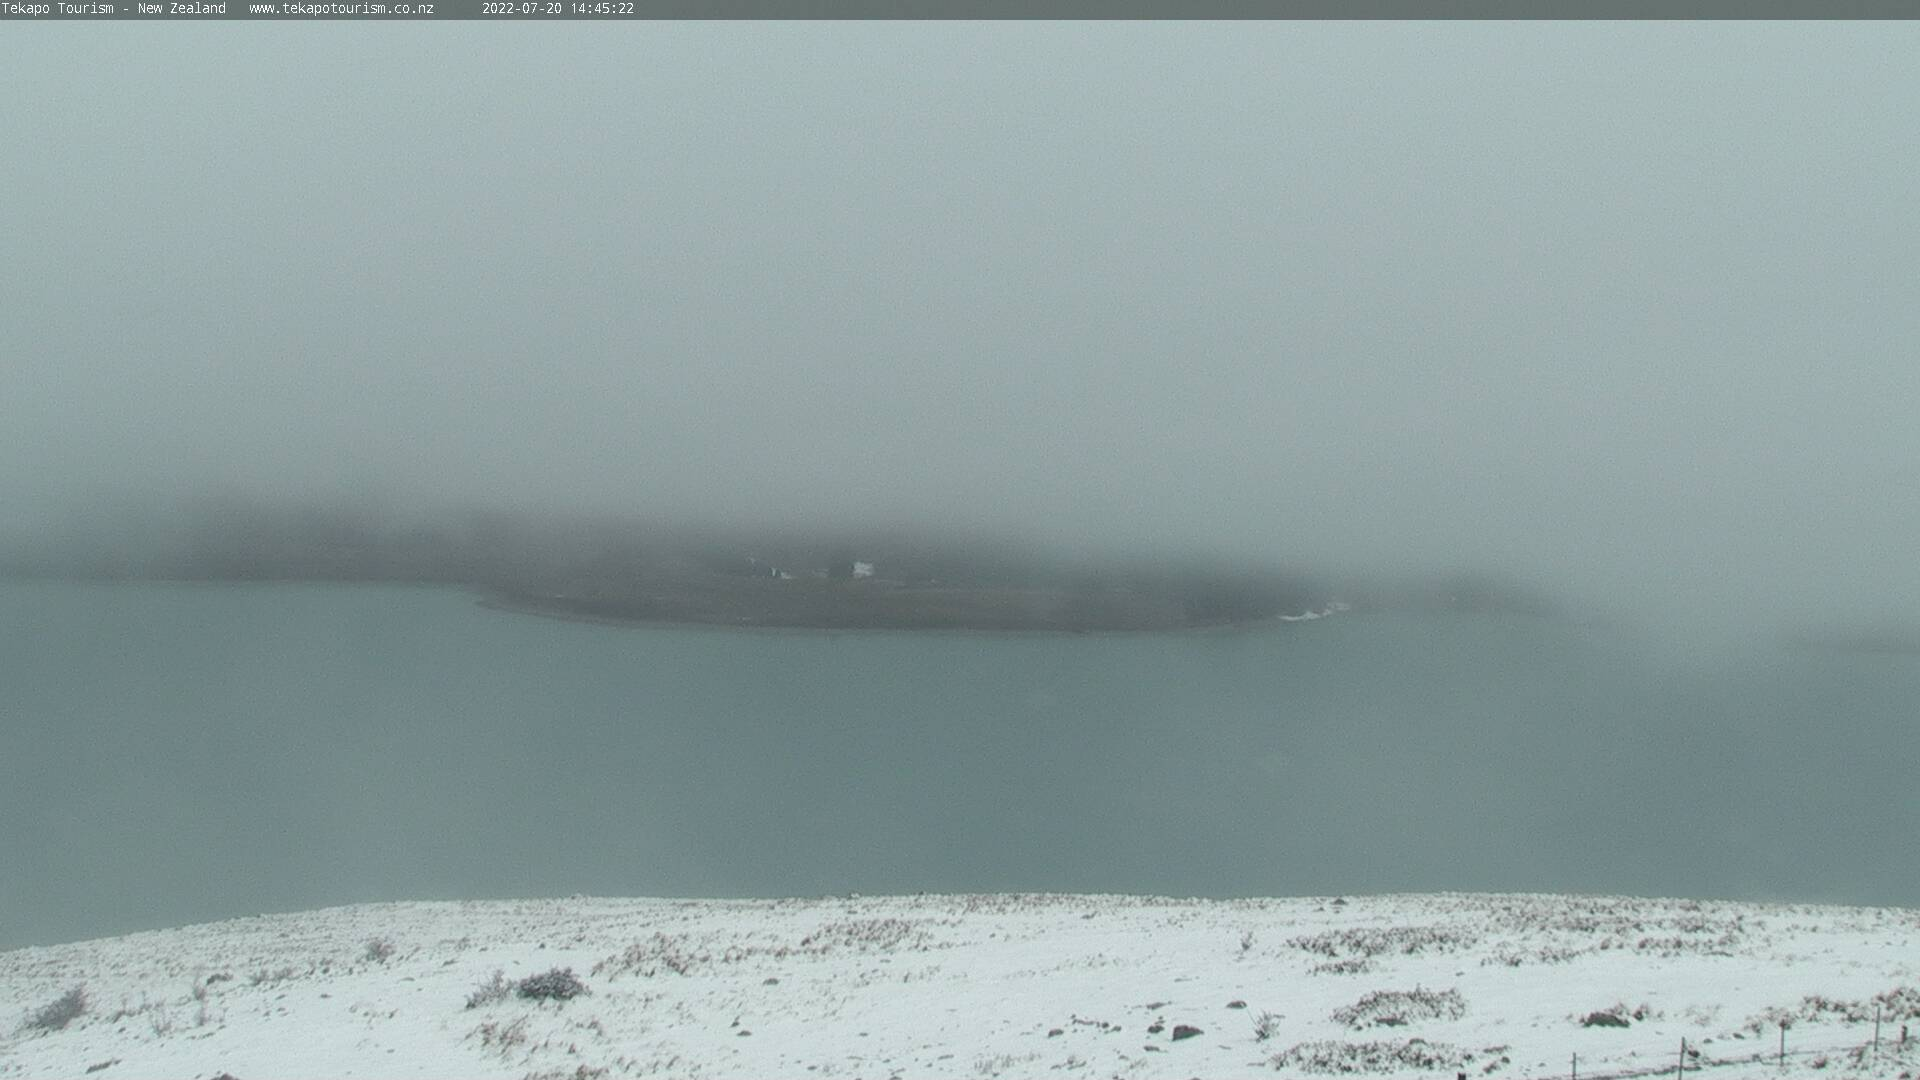 Tekapo Tourism webcam. East view.